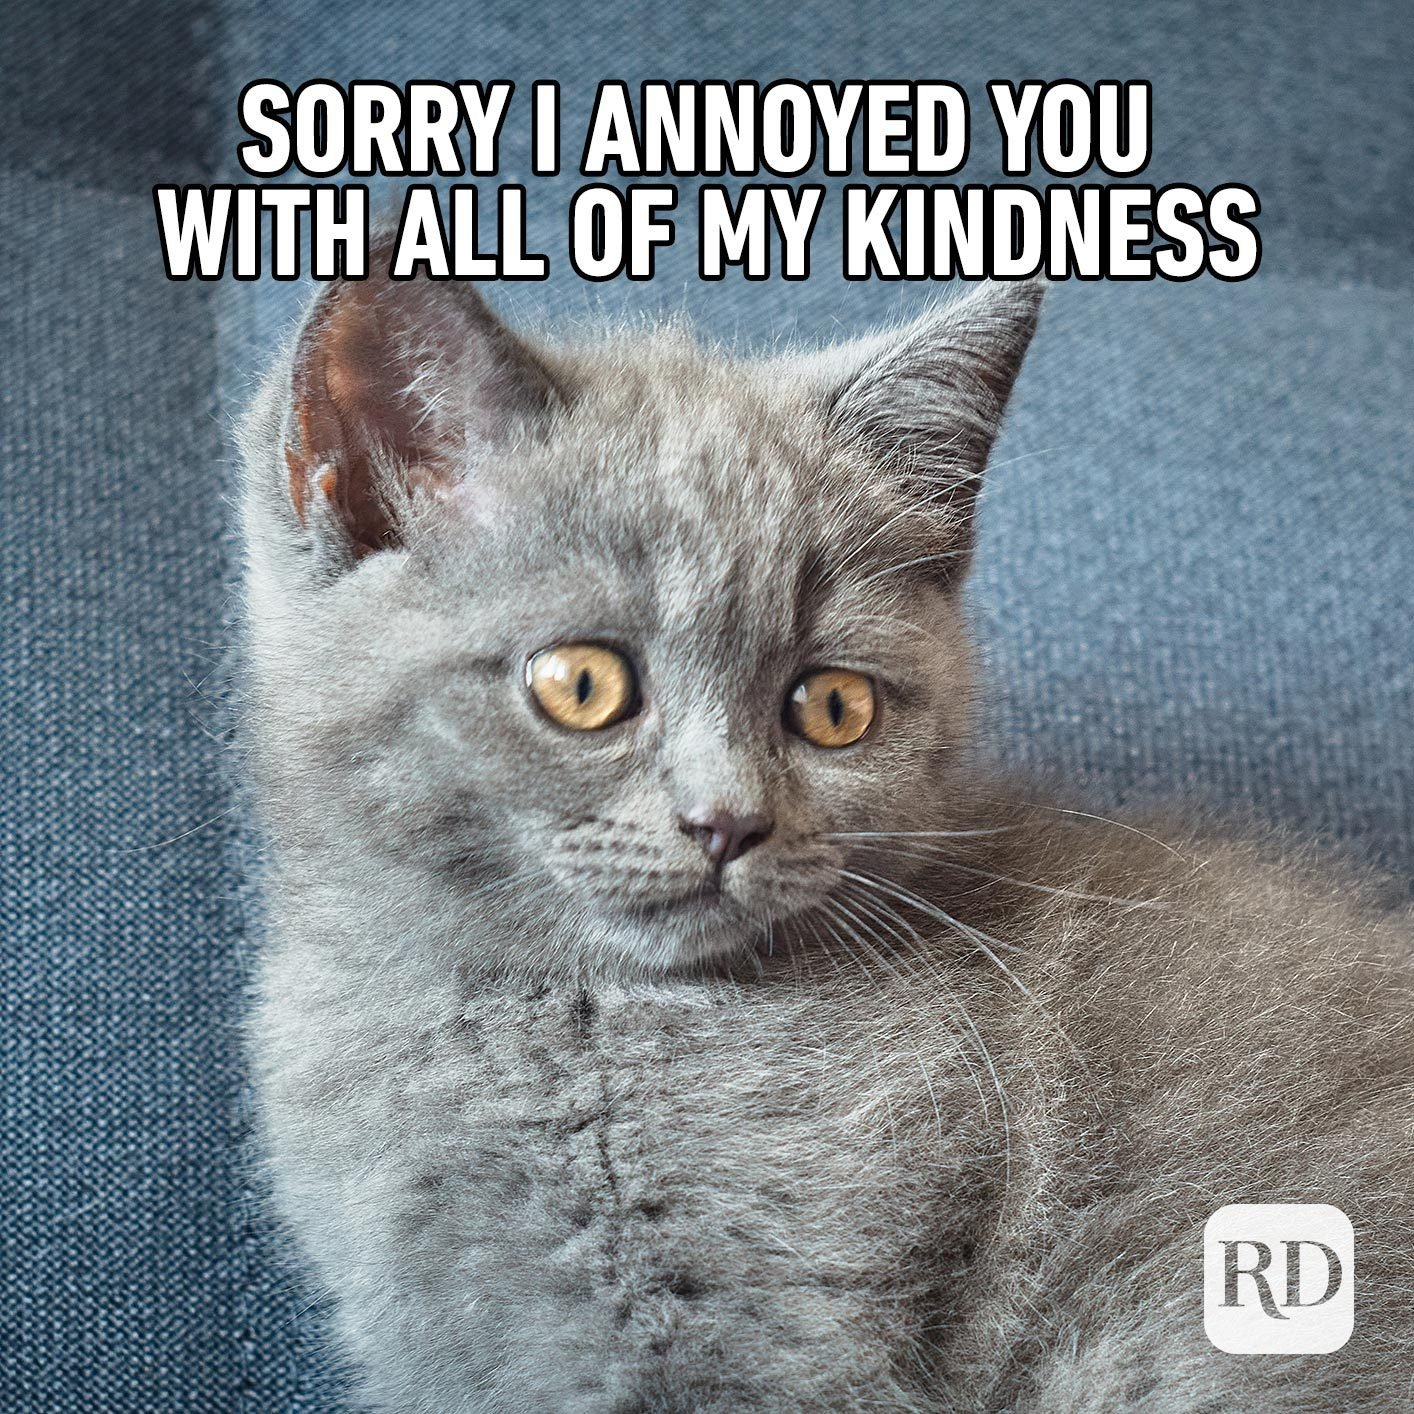 Cat looking very cute. Meme text: Sorry I annoyed you with all of my kindness